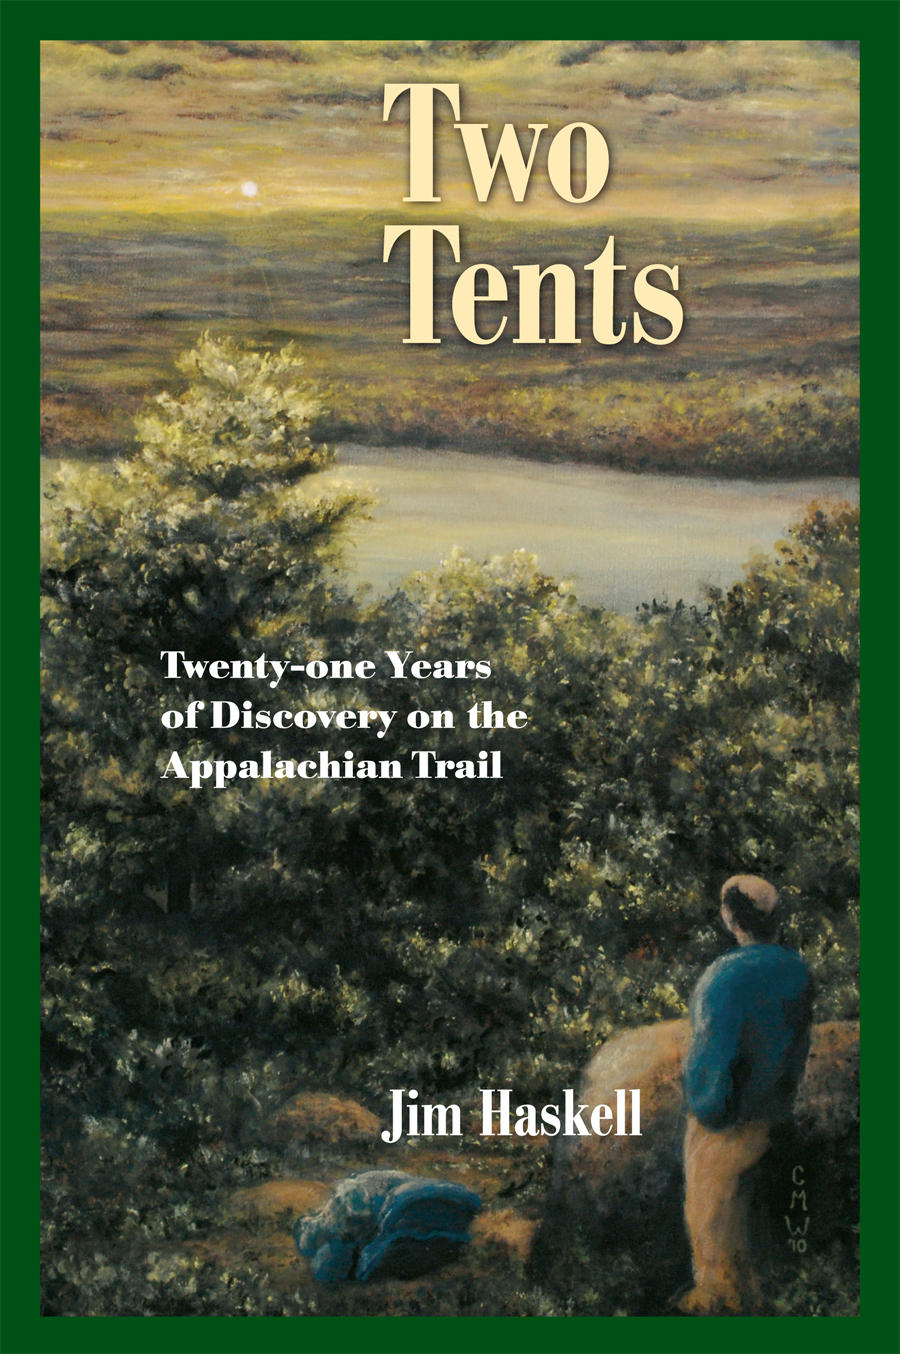 Author Jim Haskell | WAMC's In Conversation With